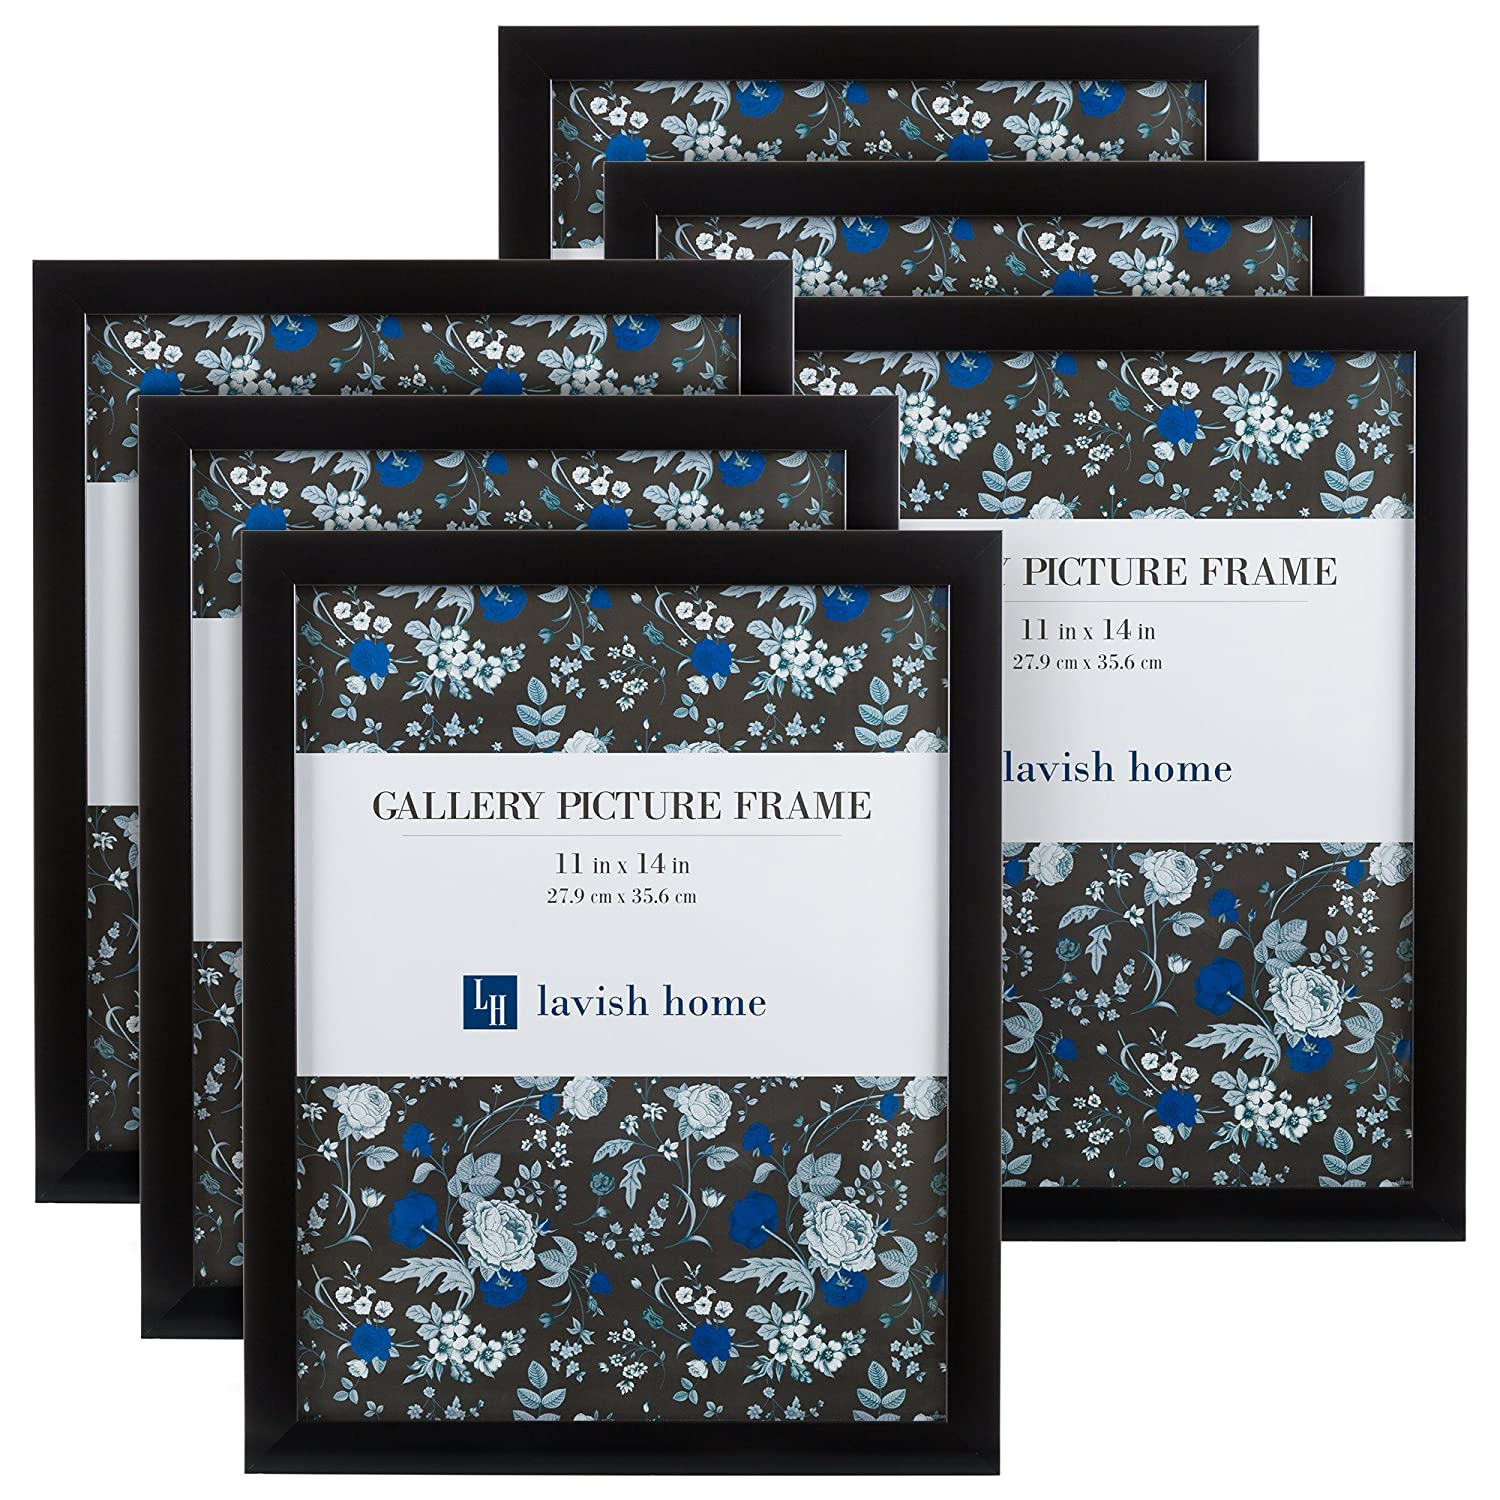 Picture Frame Set, 11x14 Frames Pack For Picture Gallery Wall With Stand and Hanging Hooks, Set of 6 By Lavish Home (Black)